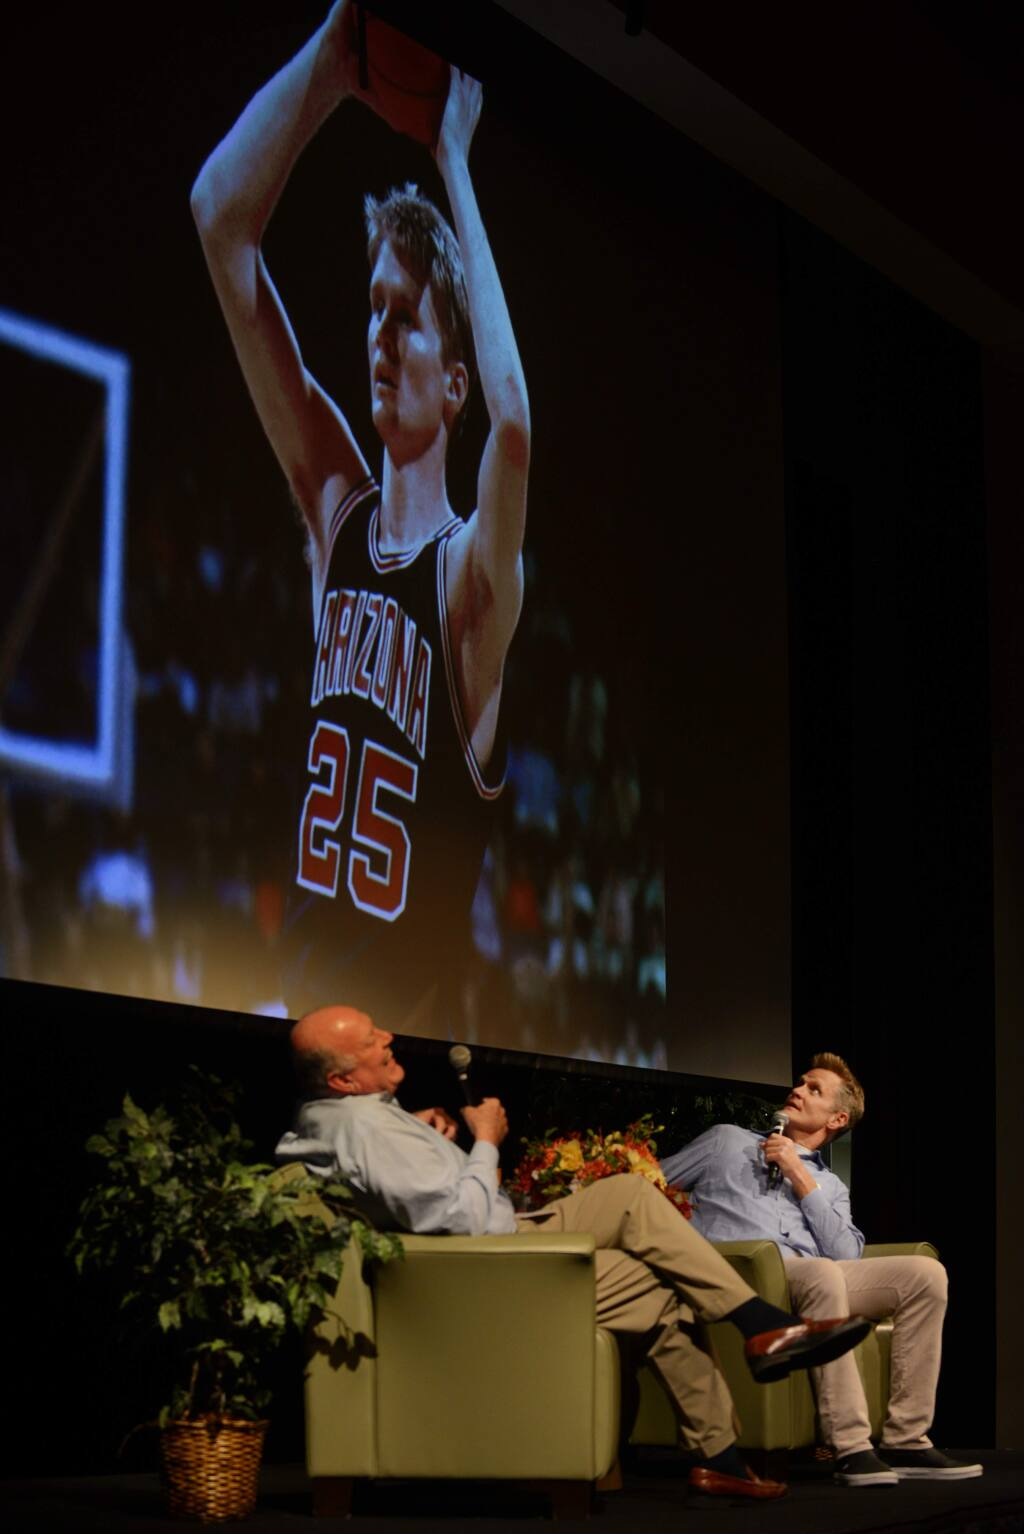 Head Coach of the Golden State Warriors Steve Kerr, right, checking out an old photo from his college days during a conversation with former Head Coach and General Manager of the Warriors Garry St. Jean, left, at the Sonoma Speakers Series held Monday evening at Hanna Boys Centerin Sonoma, California. October 1, 2018.(Photo: Erik Castro/for The Press Democrat)